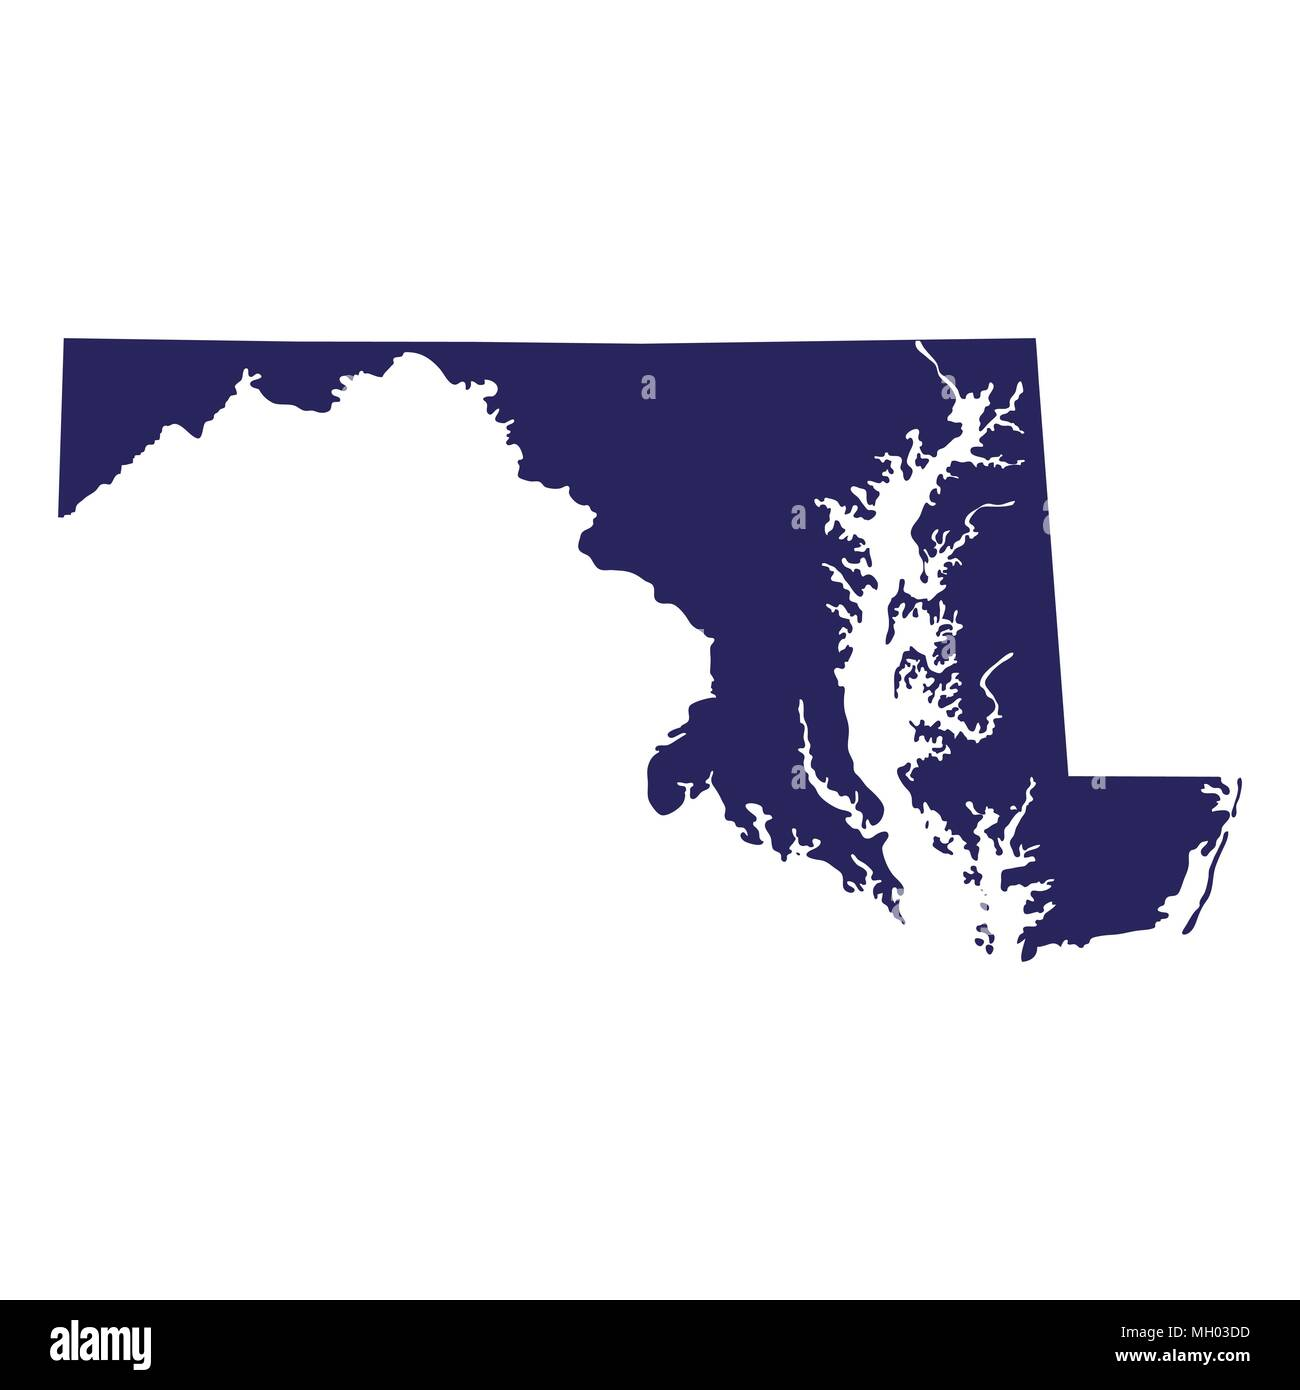 map of the U.S. state of Maryland  - Stock Vector